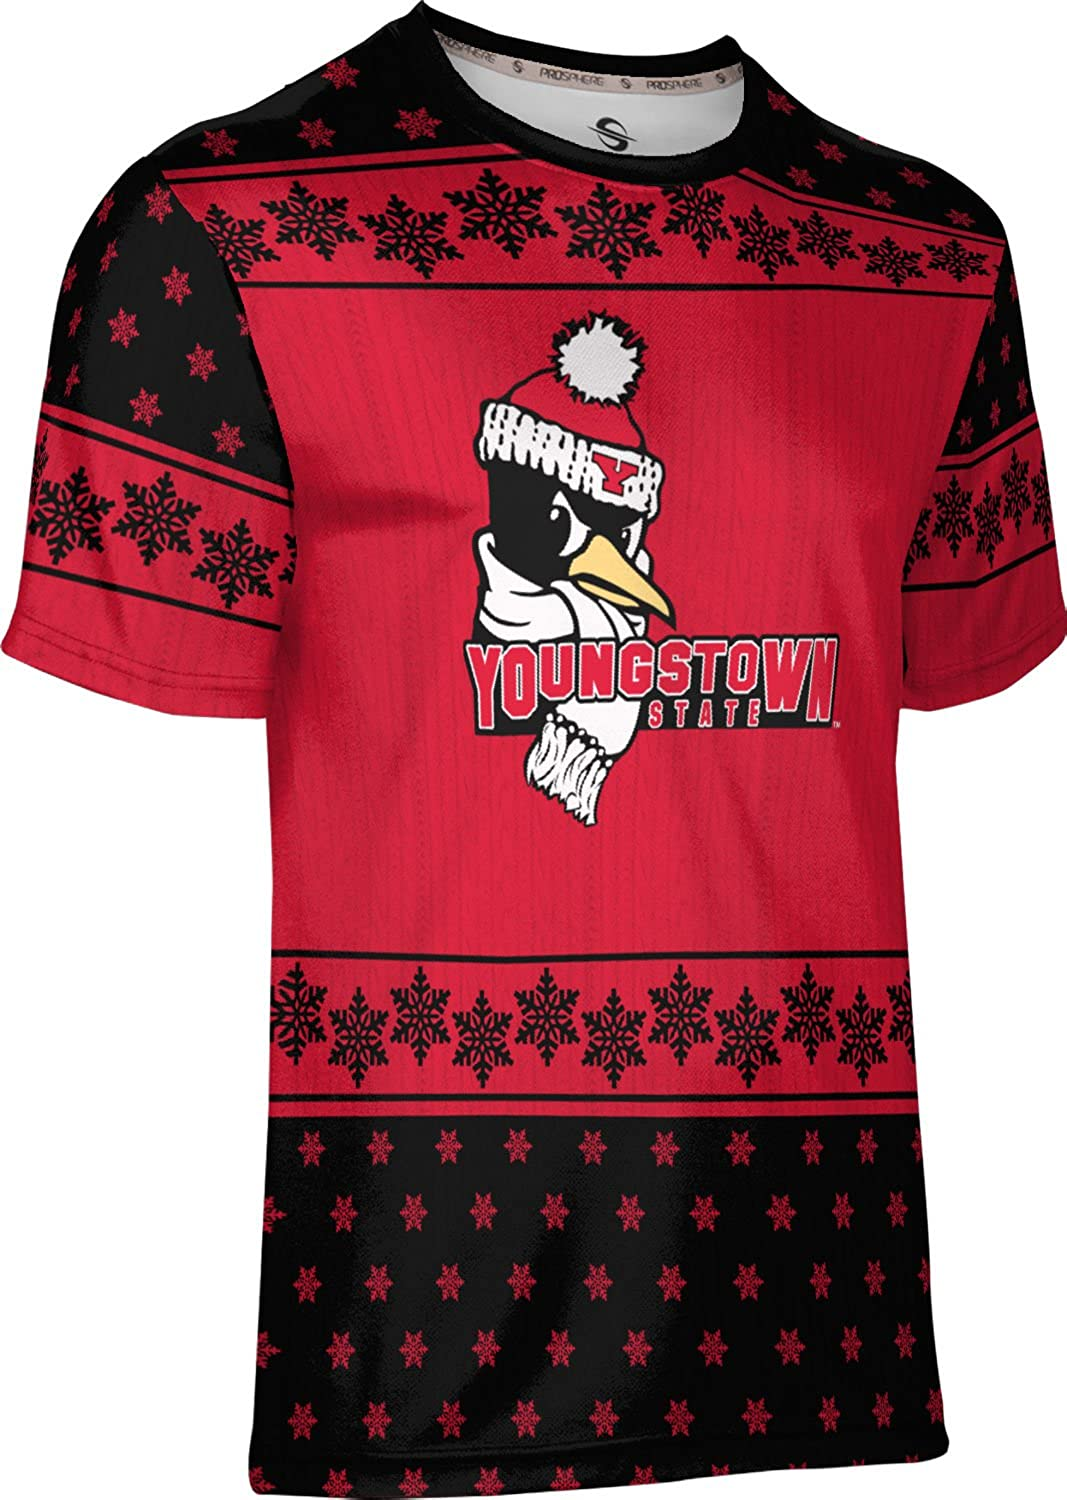 Youngstown State University Ugly Holiday Mens Performance T-Shirt Snowflake